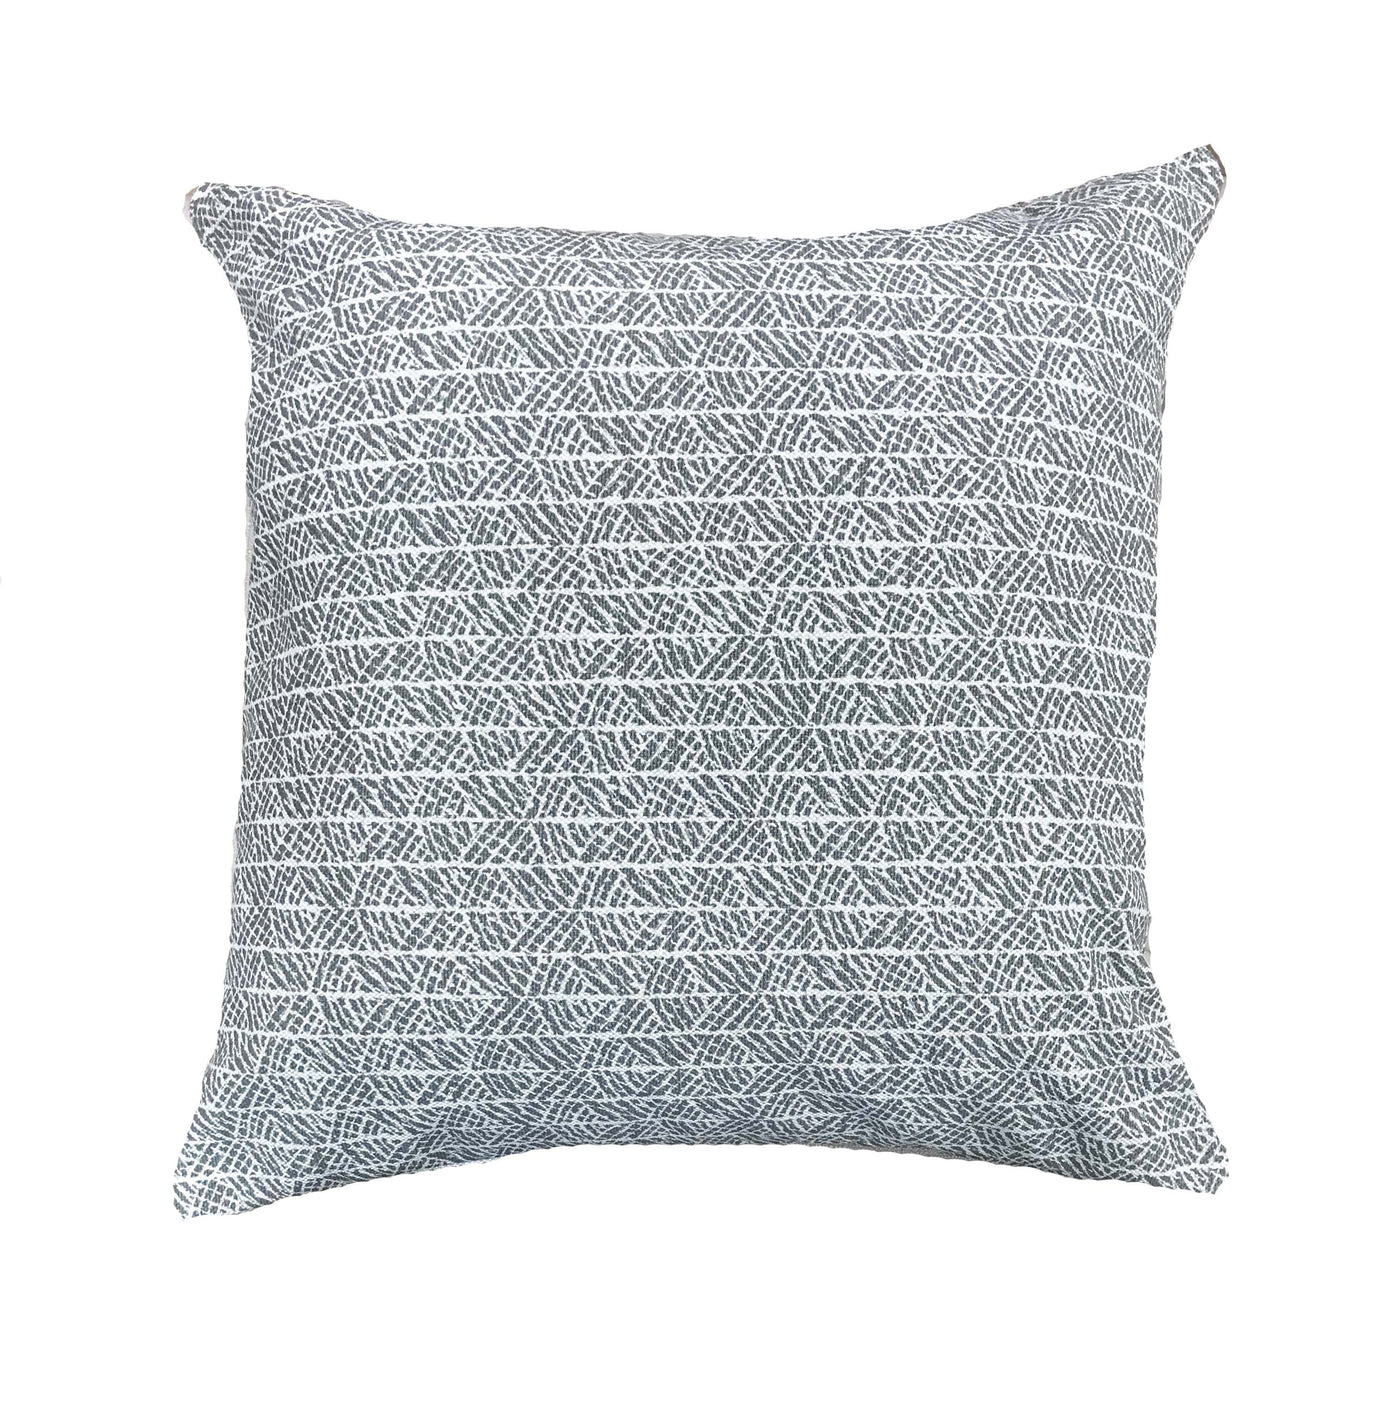 Simple style with gray decorative pillows - HALEP - Studio Pillows